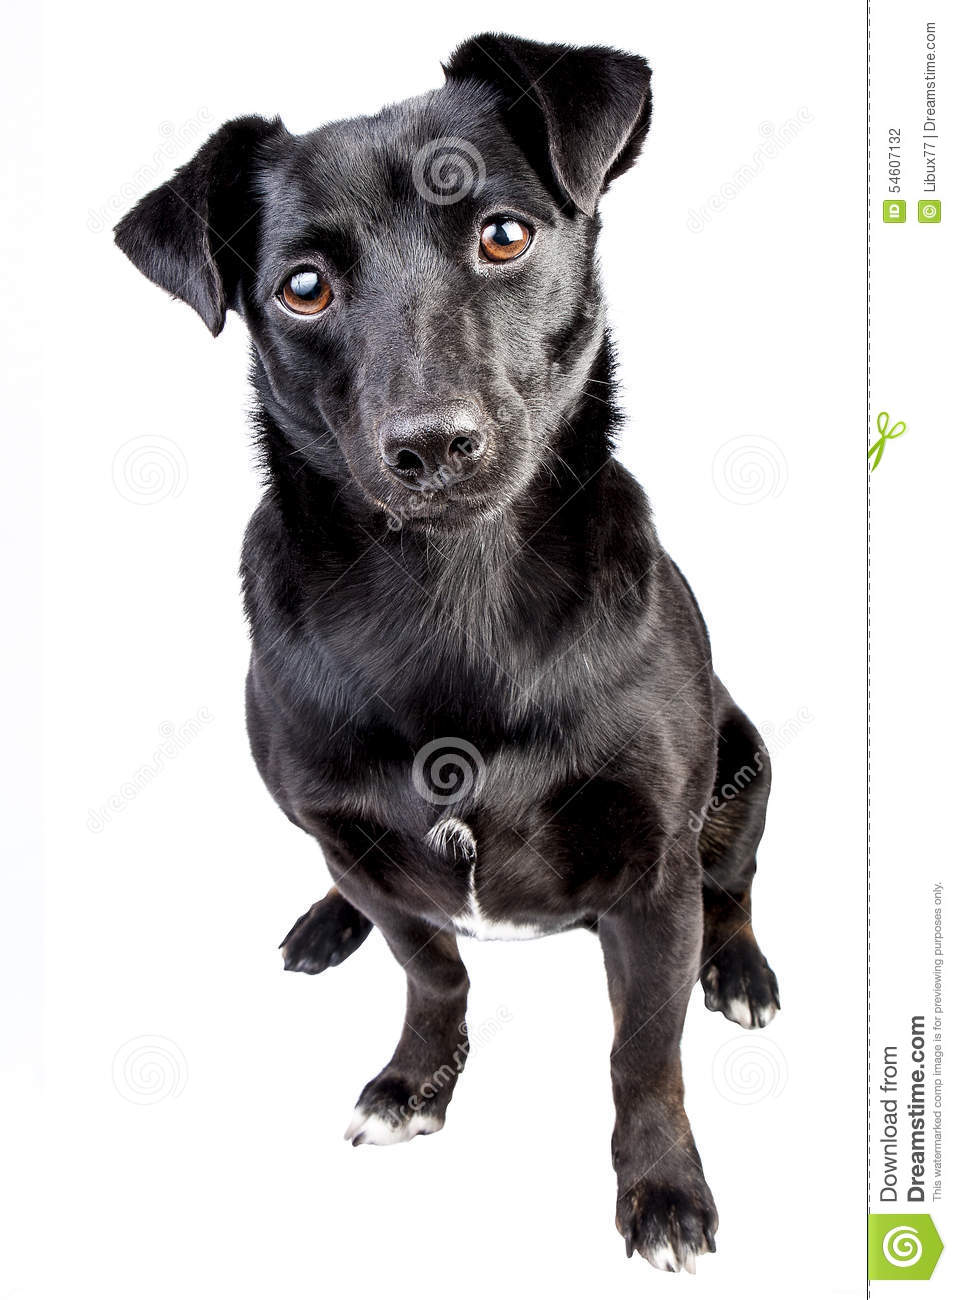 Dog Small Black Looking Portrait Isolated